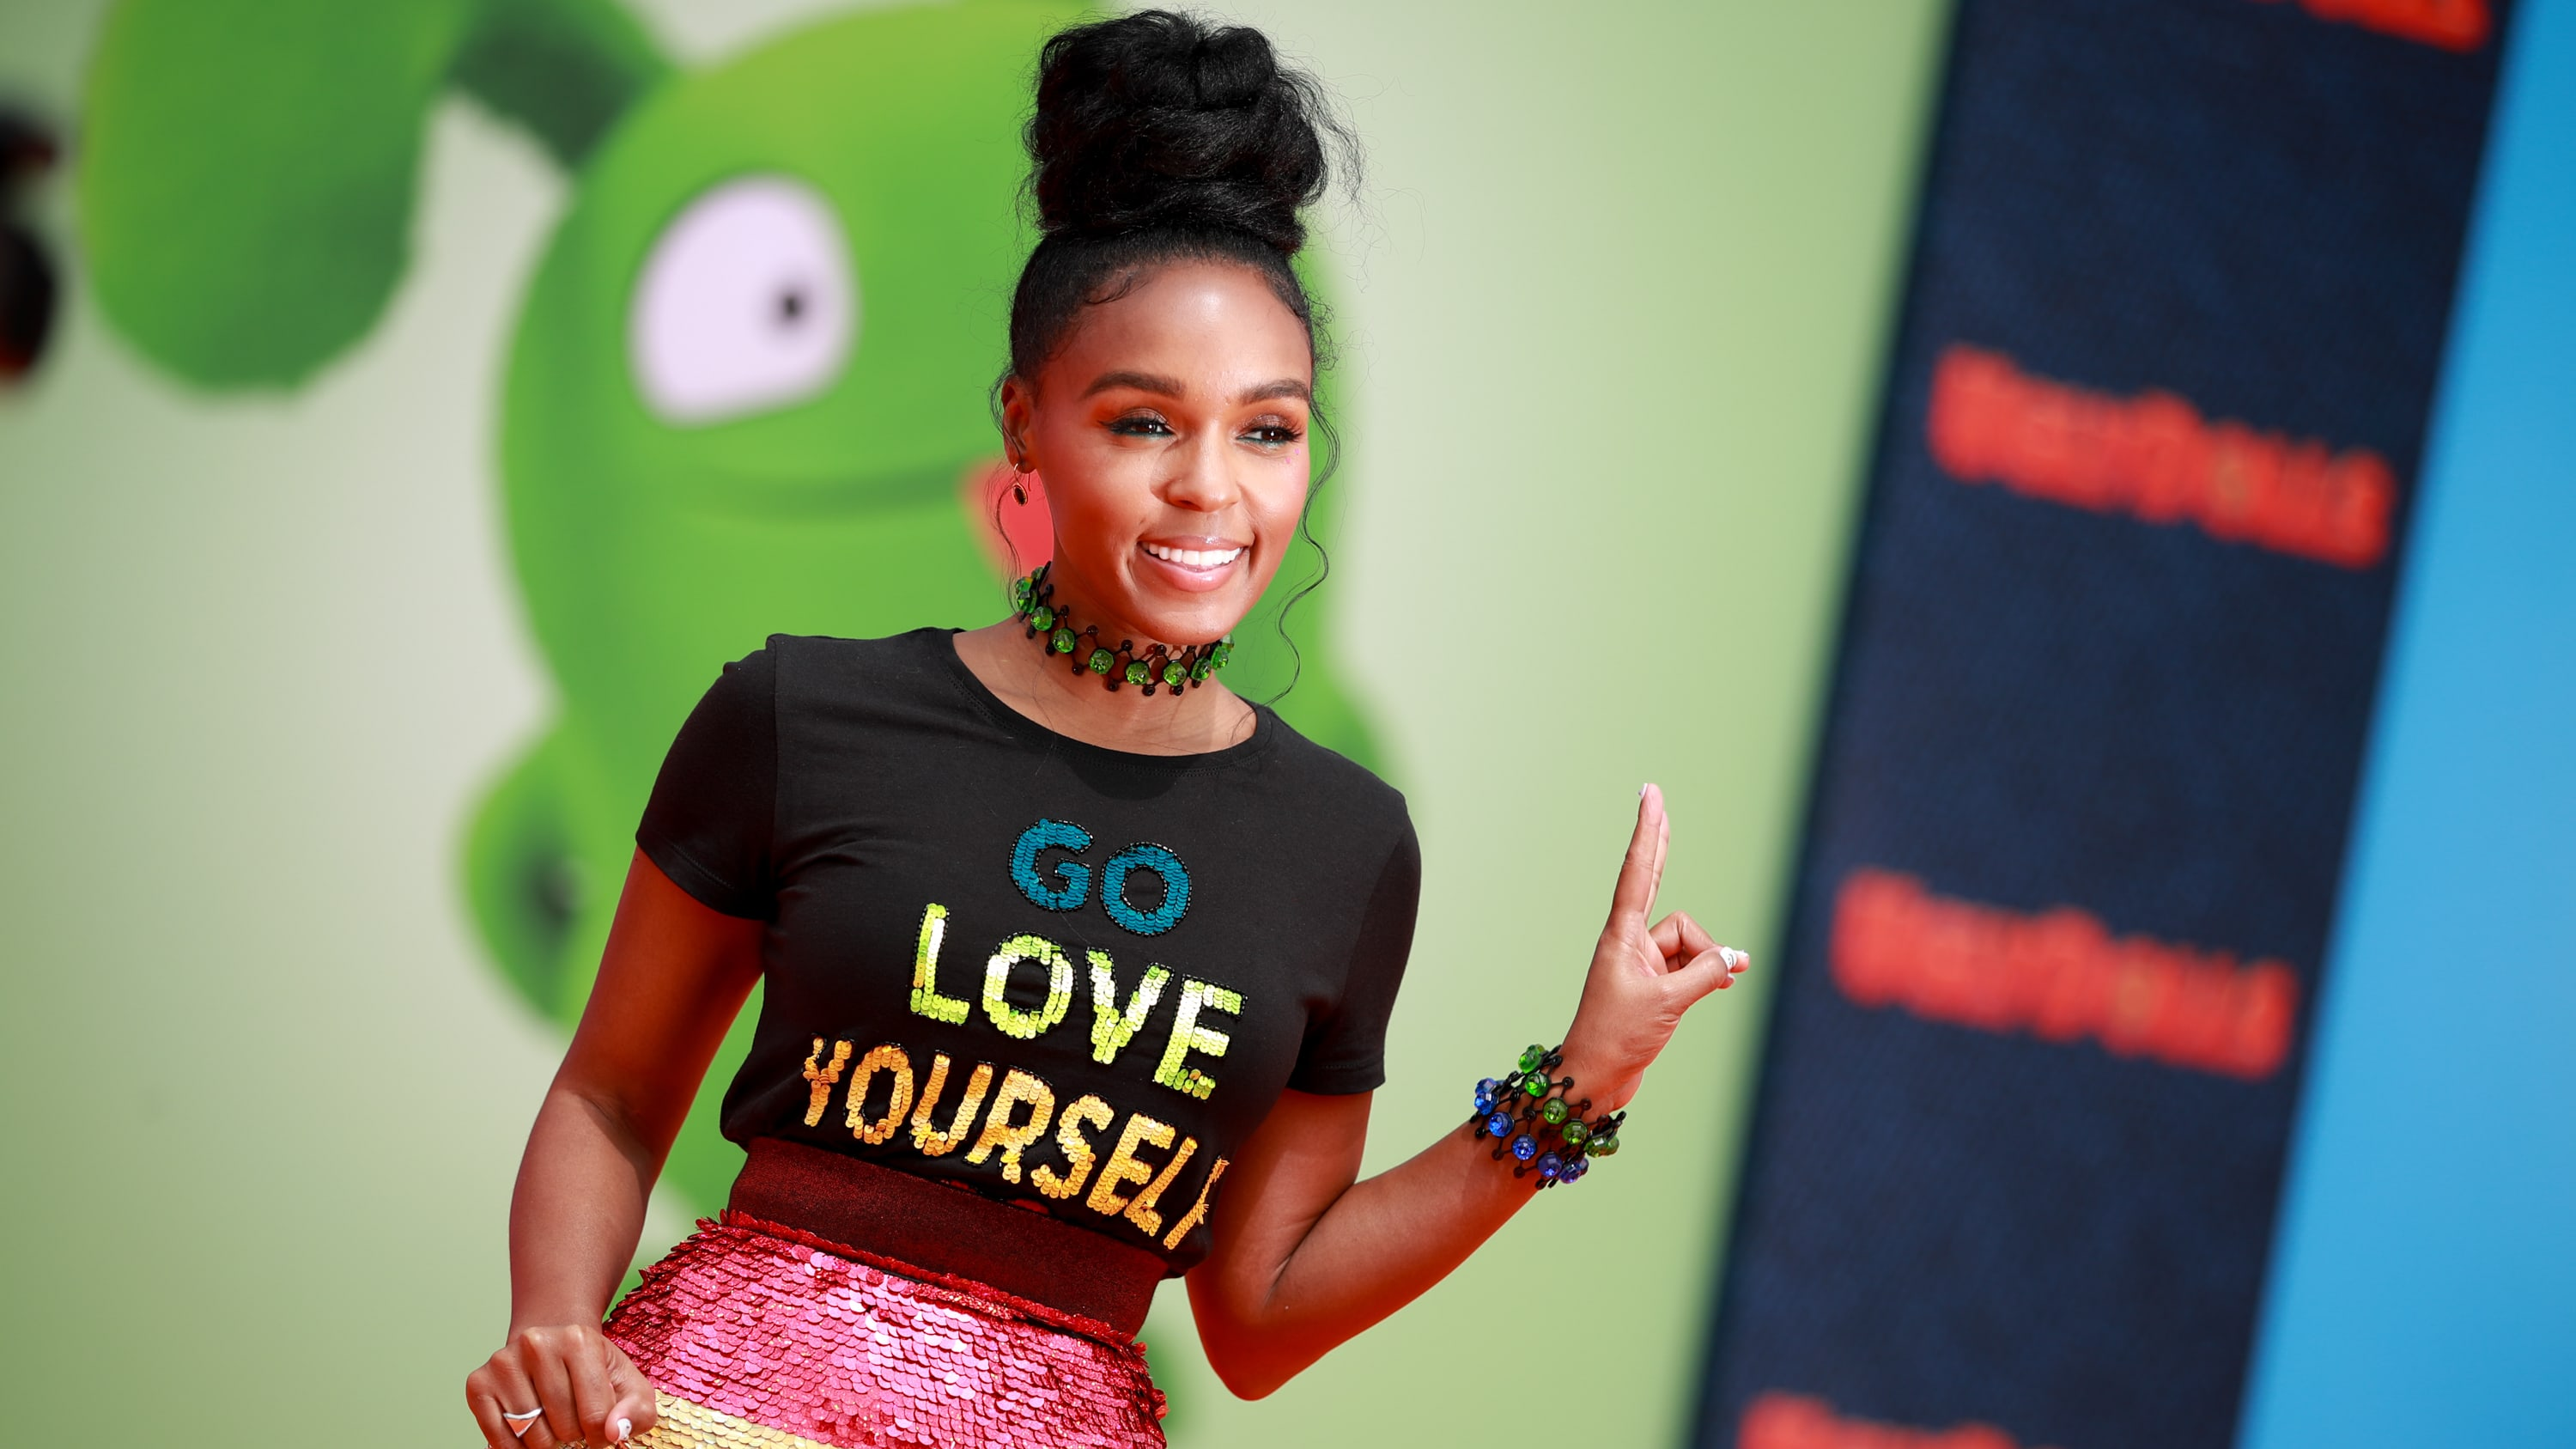 """LOS ANGELES, CALIFORNIA - APRIL 27: Janelle Monáe attends STX Films World Premiere of """"UglyDolls"""" at Regal Cinemas L.A. Live on April 27, 2019 in Los Angeles, California. (Photo by Rich Fury/Getty Images)"""